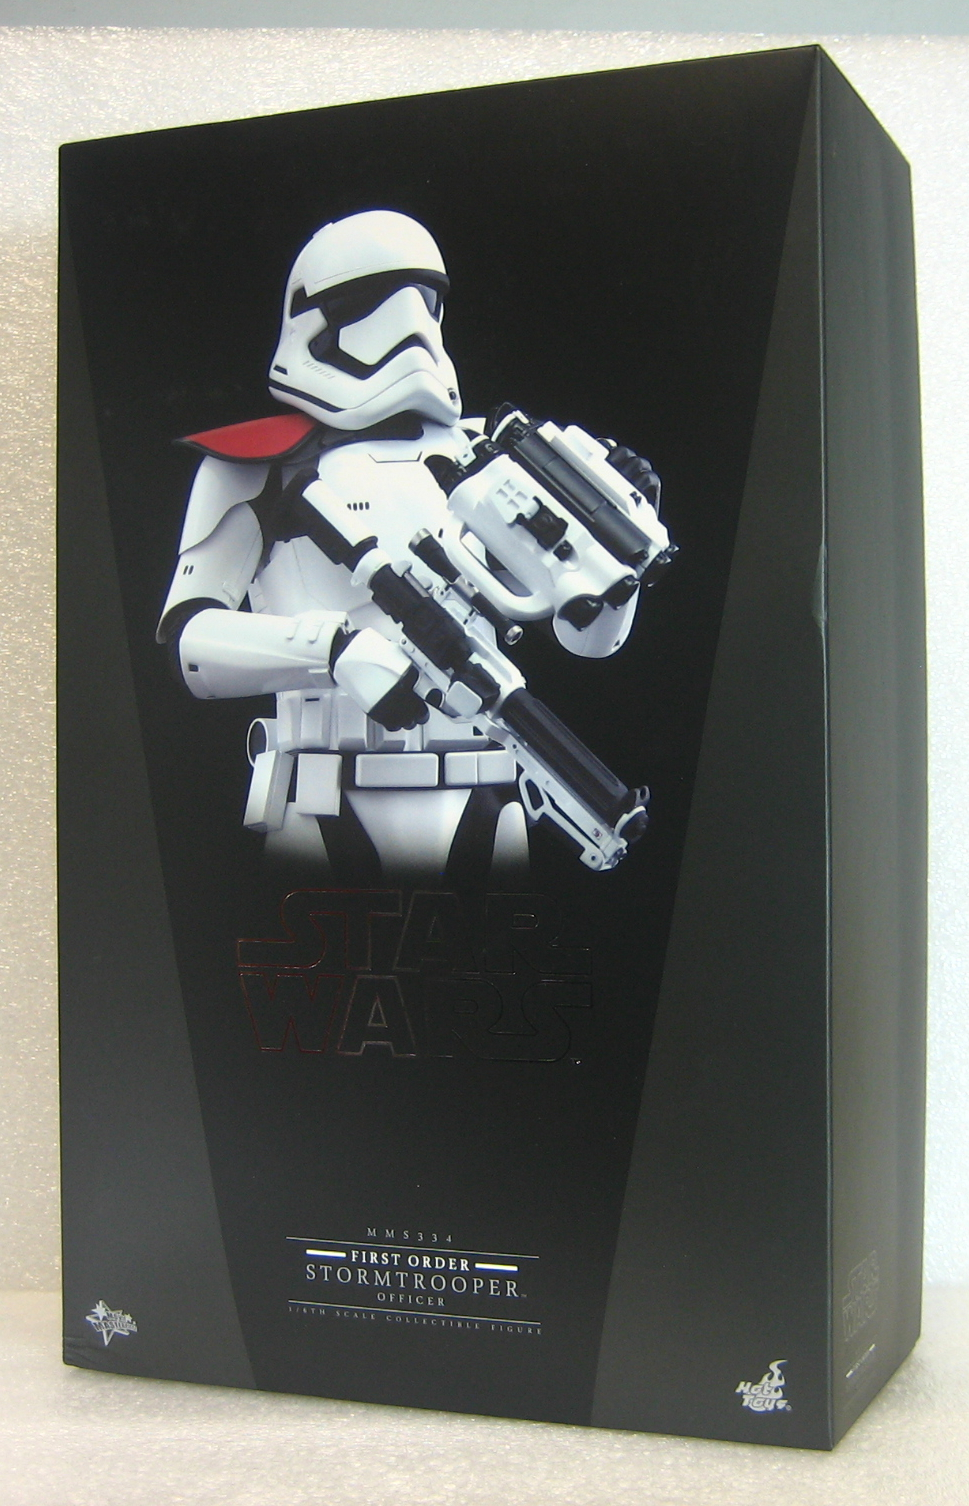 Hot Toys Star Wars First Order Stormtrooper Officer 1:6 Scale Figure